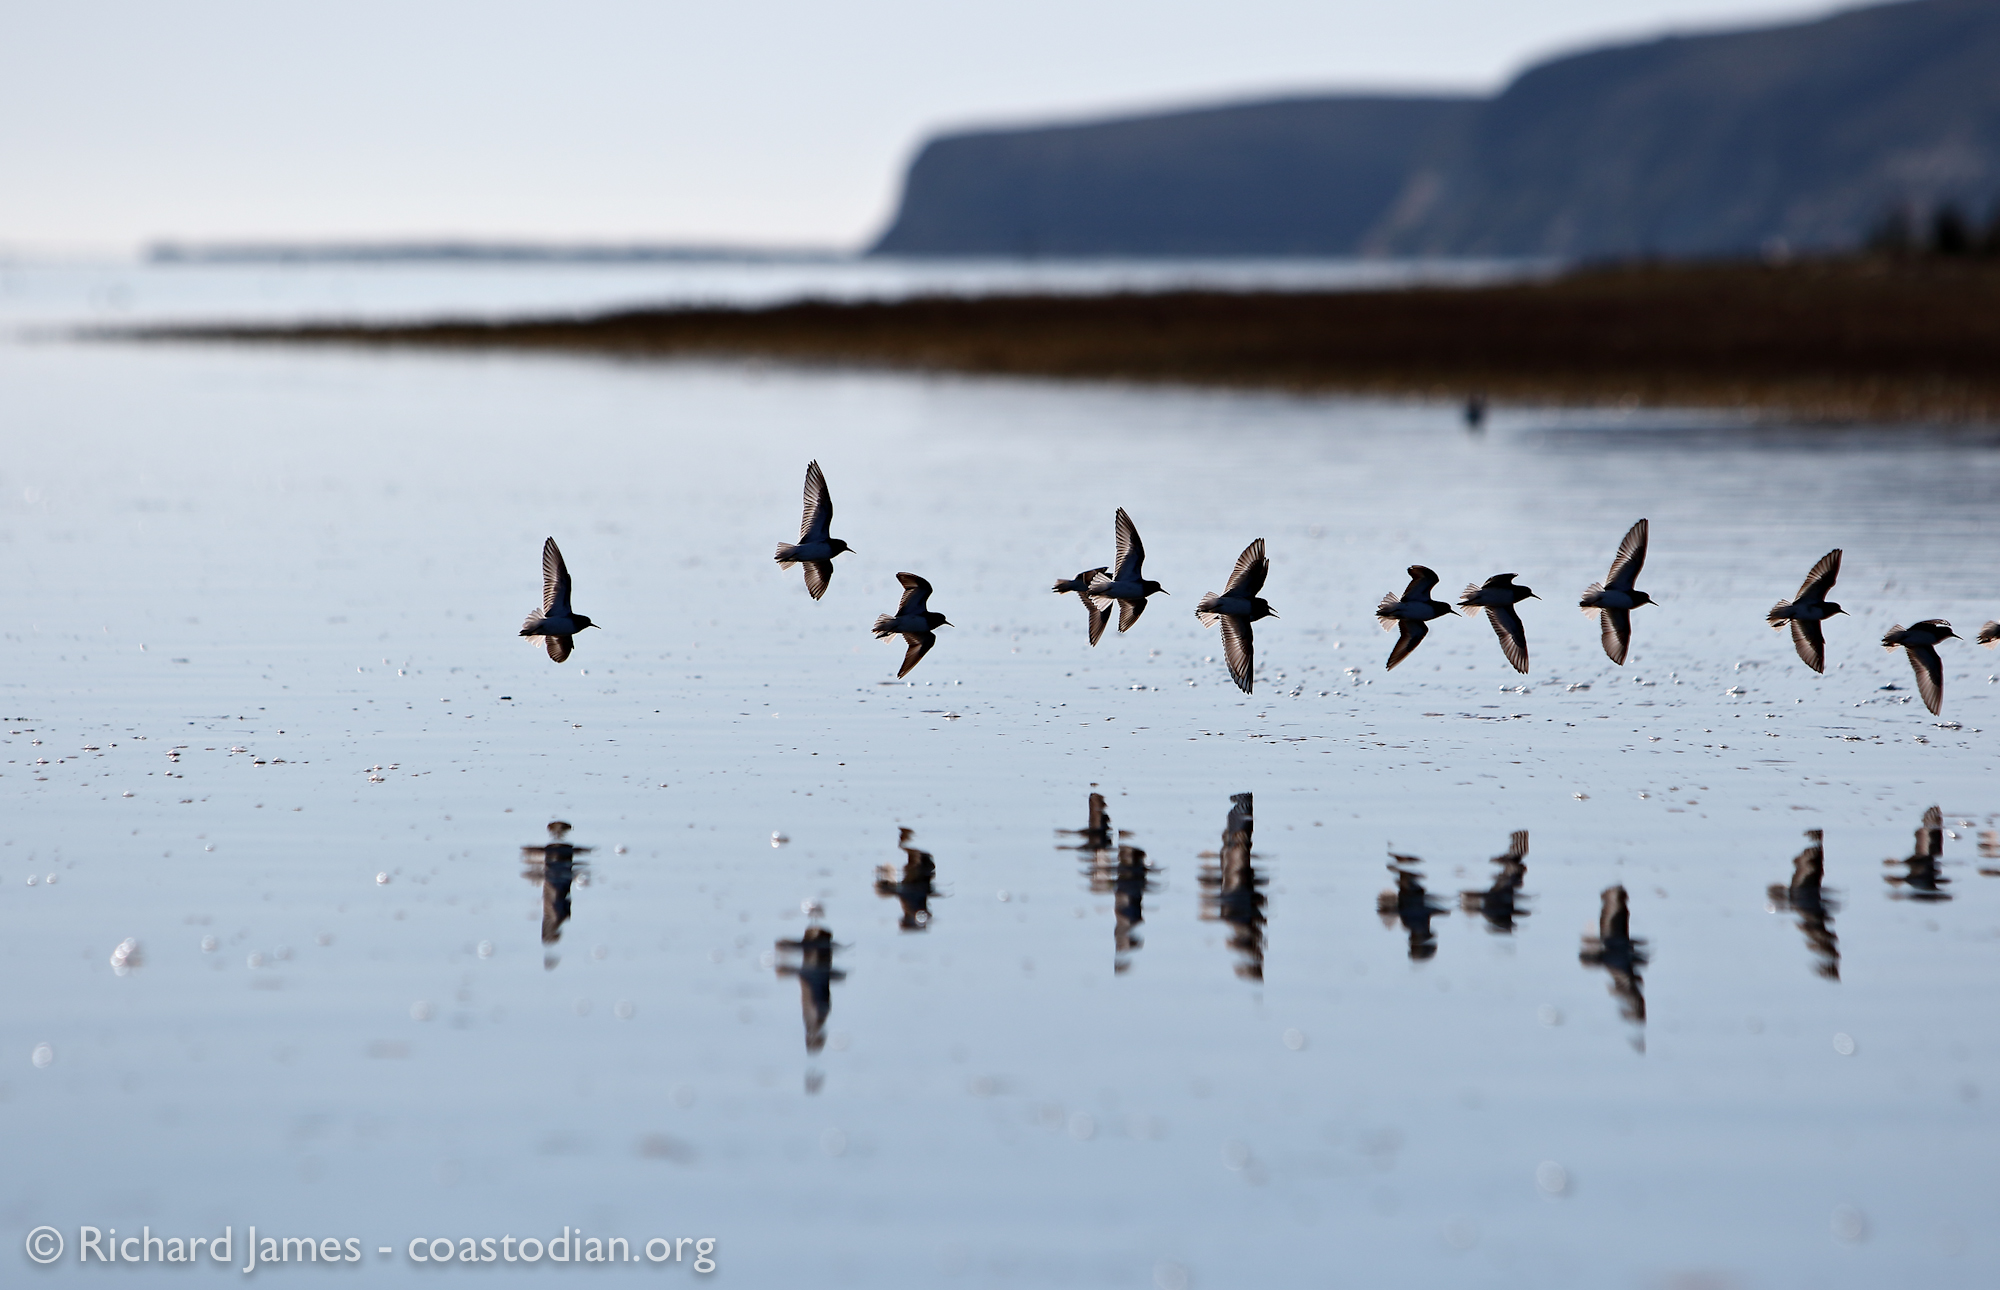 1 January, 2015 - Black Turnstones over Drakes Estero. ©Richard James